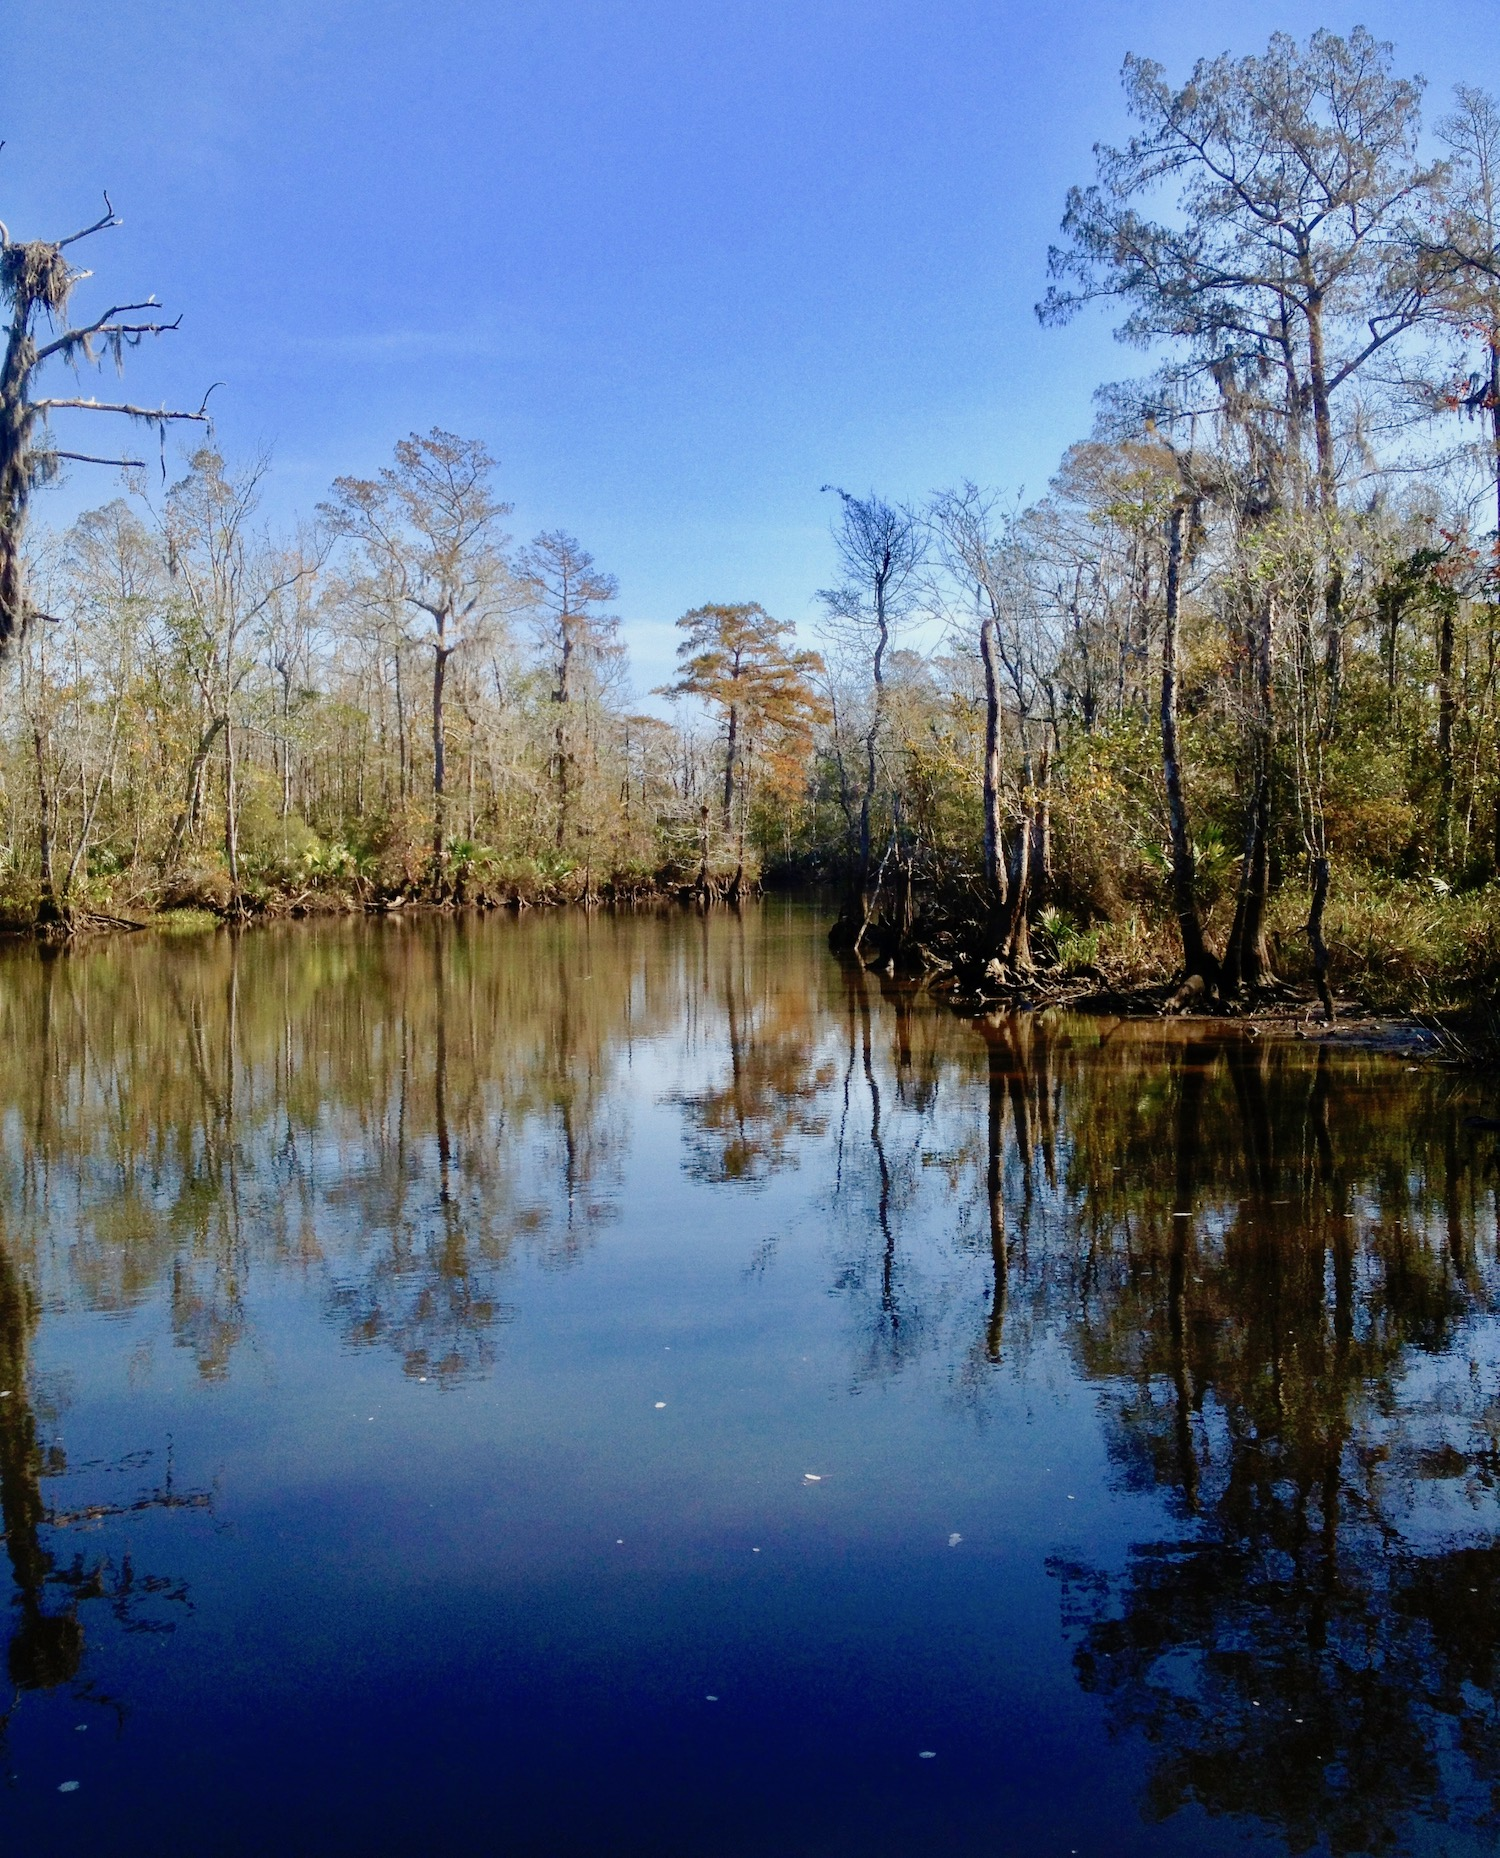 Autumn colors in the south involve reflections in deep blue waters.